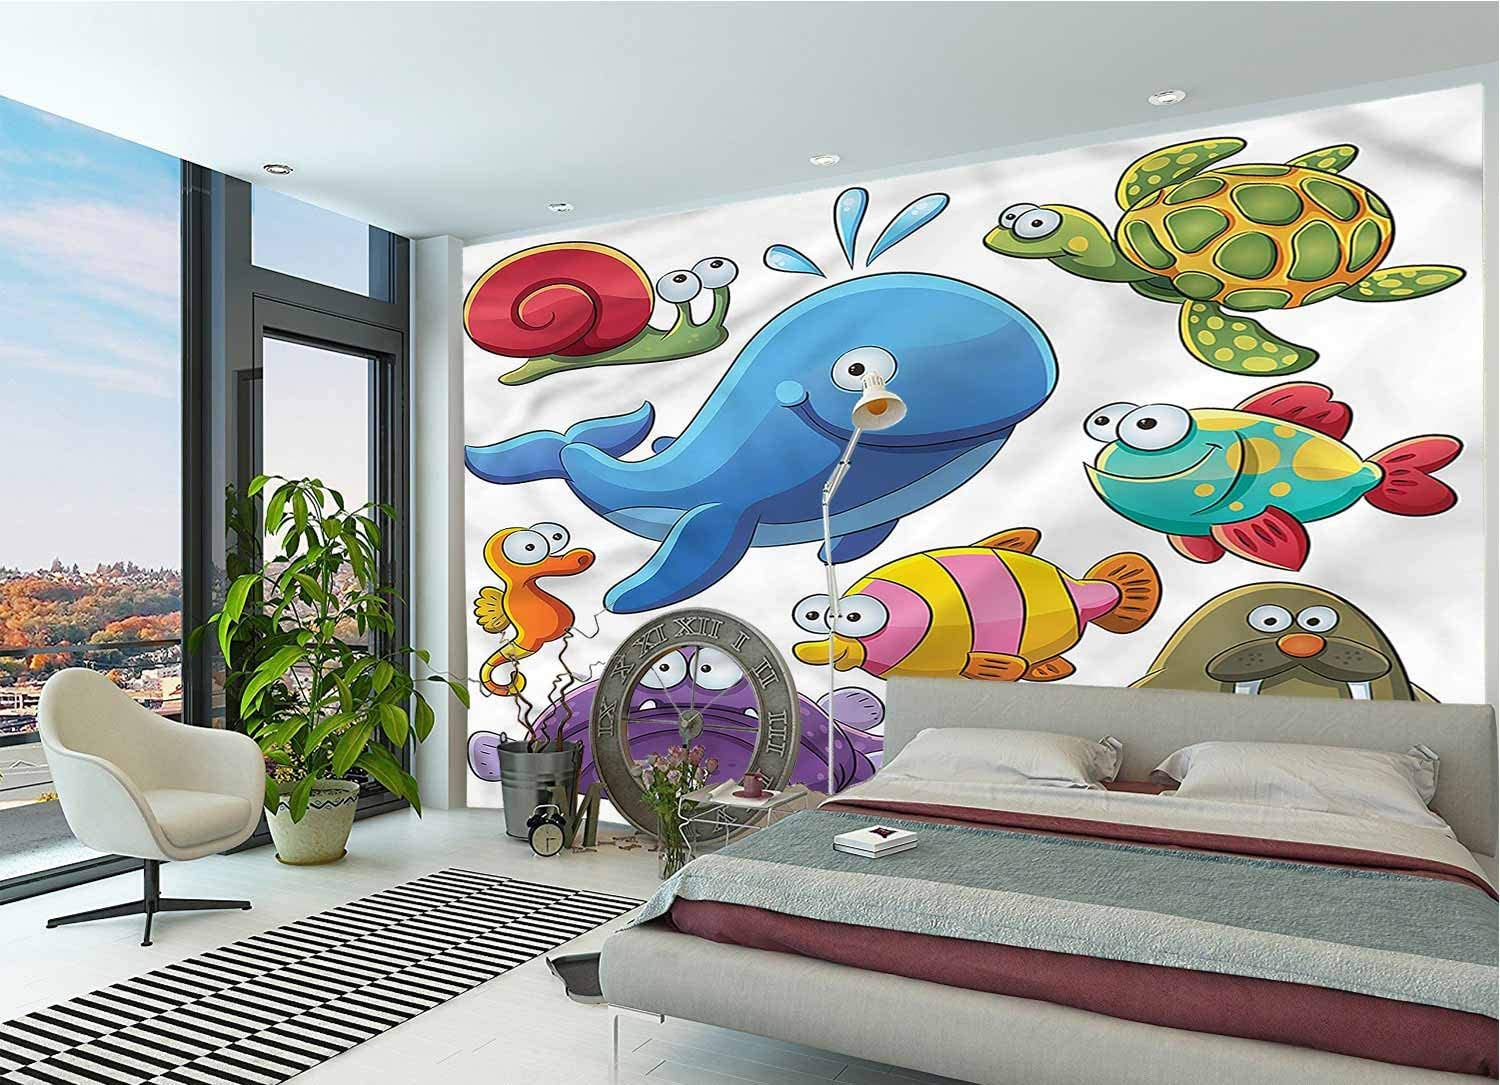 LCGGDB Whale Large Wall Mural,Underwater Animals Sea Otter Self-Adhesive Large Wallpaper for Office Kids Bedroom Nursery Family Decor-78x55 Inch